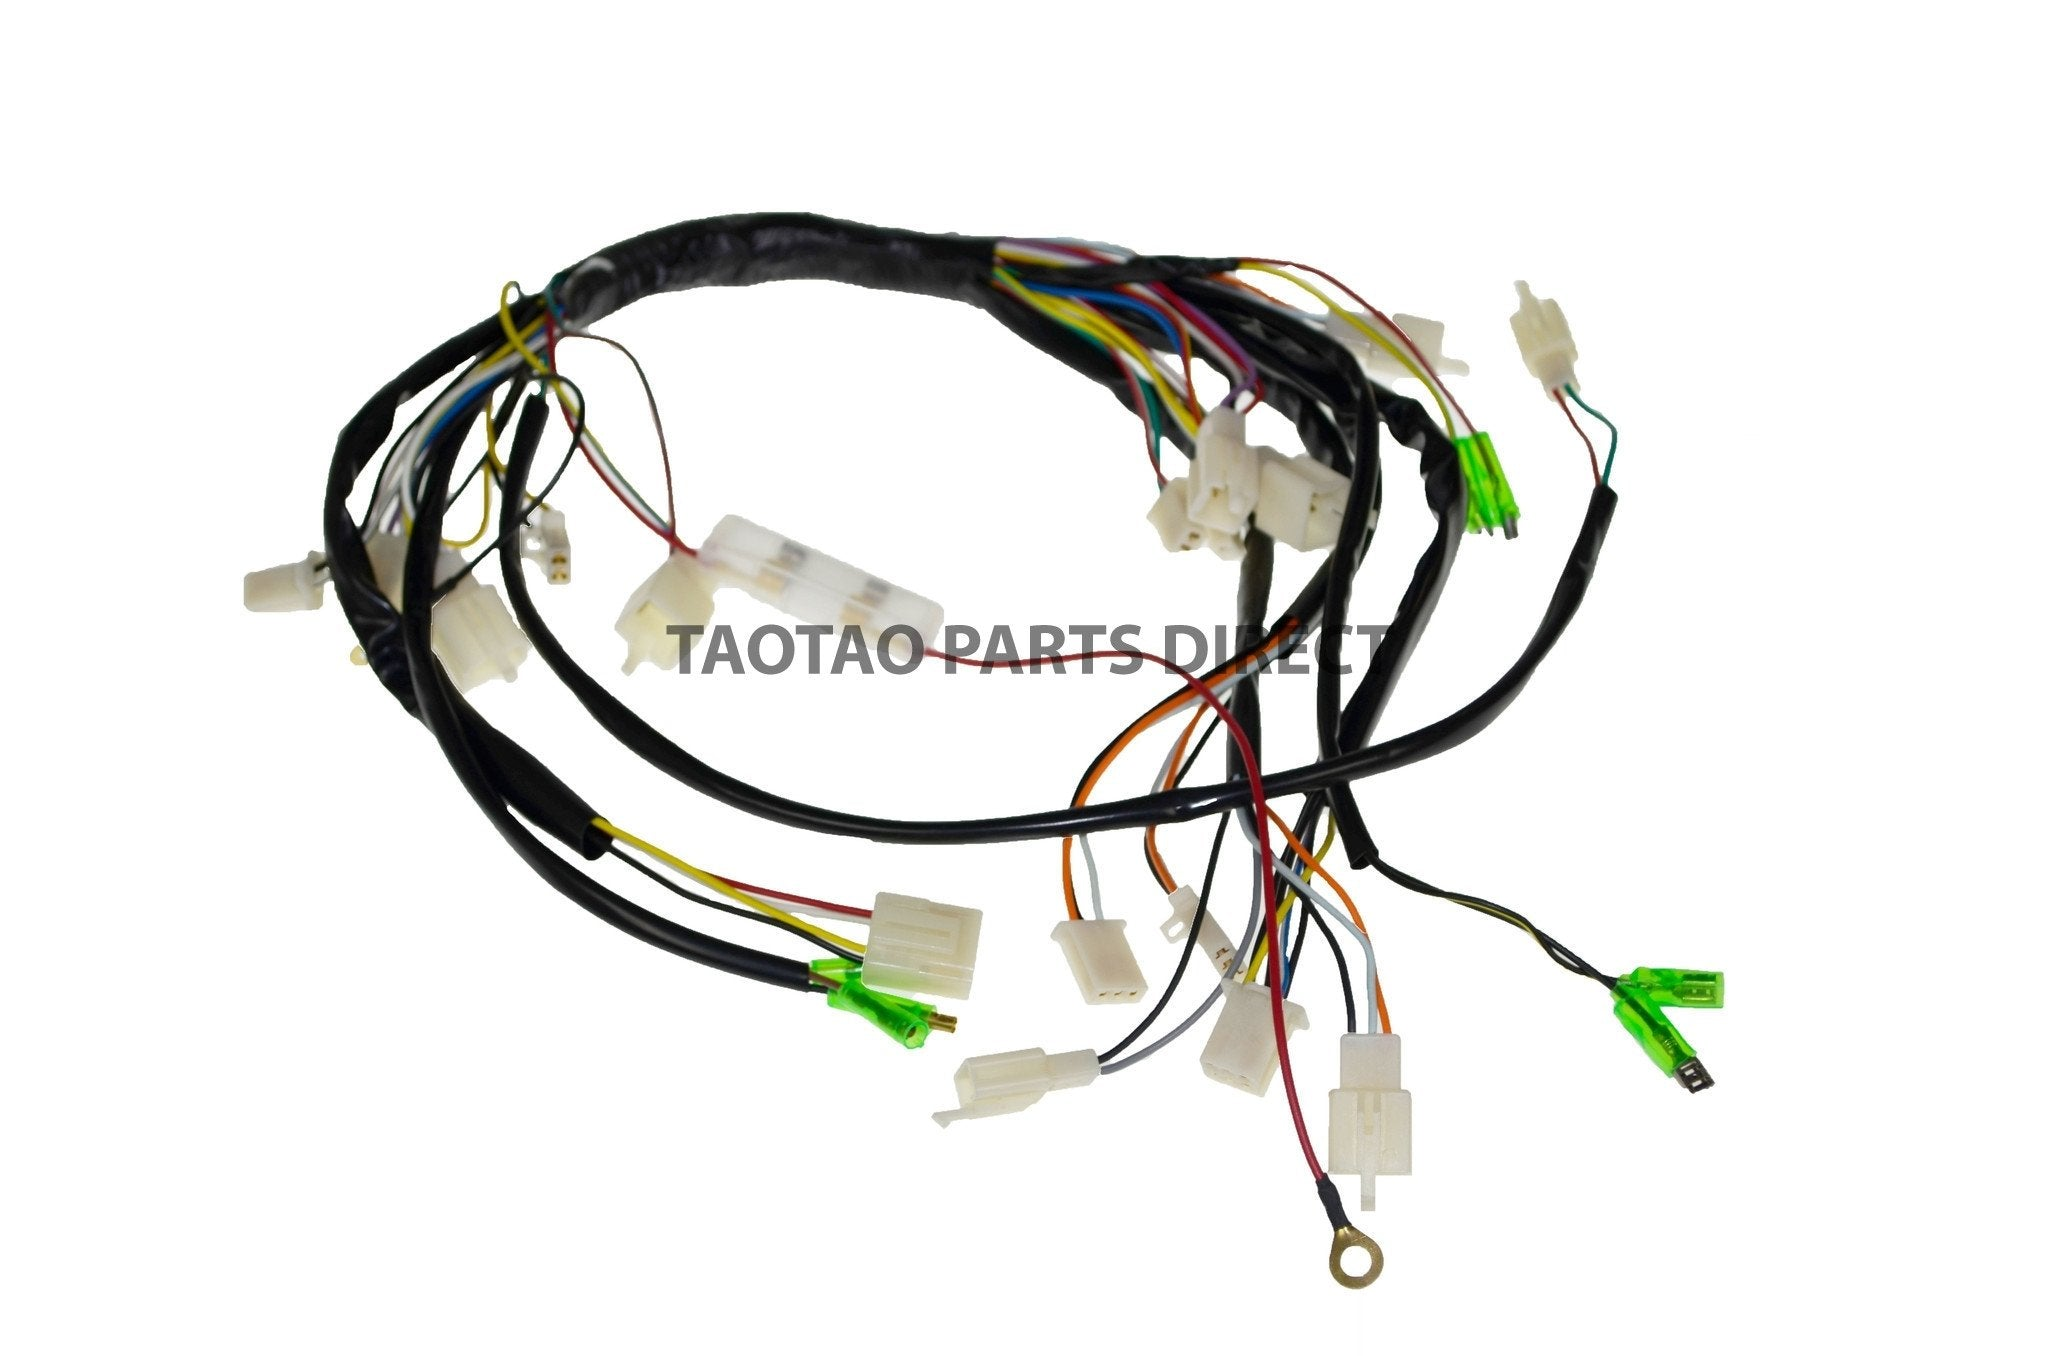 ATA125G Wire Harness #10 - TaoTaoPartsDirect.com